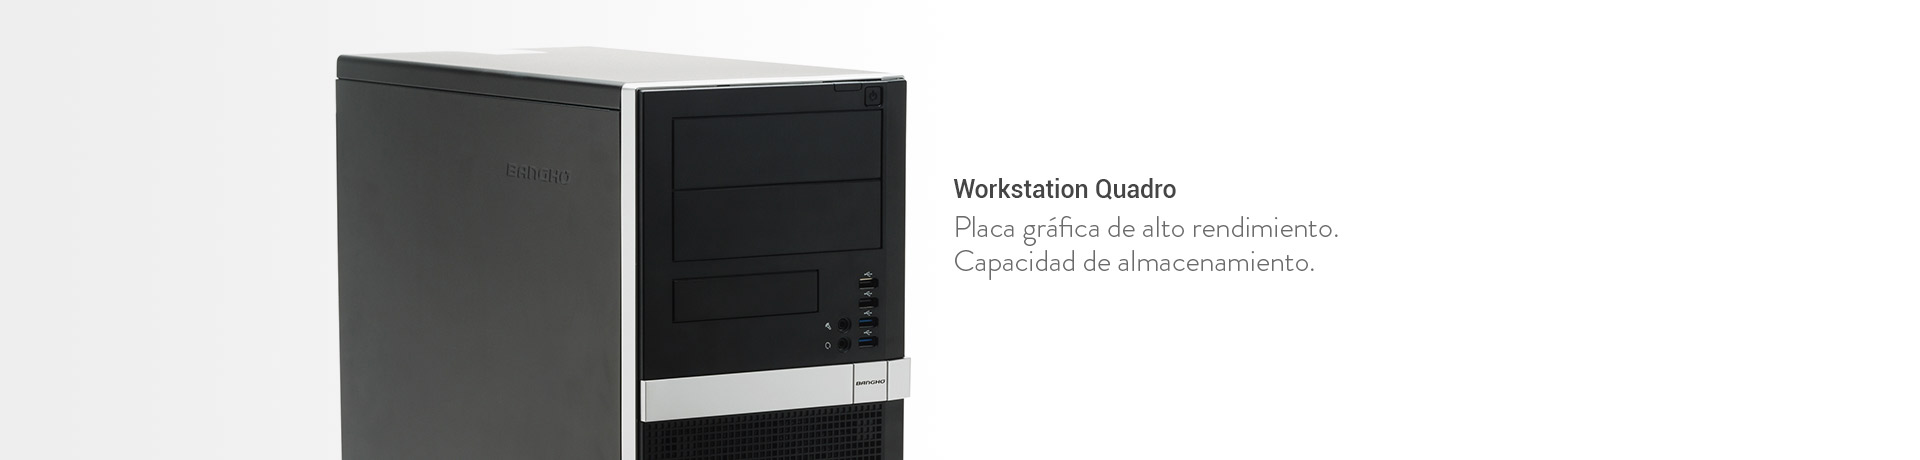 Grandes Empresas / Workstation